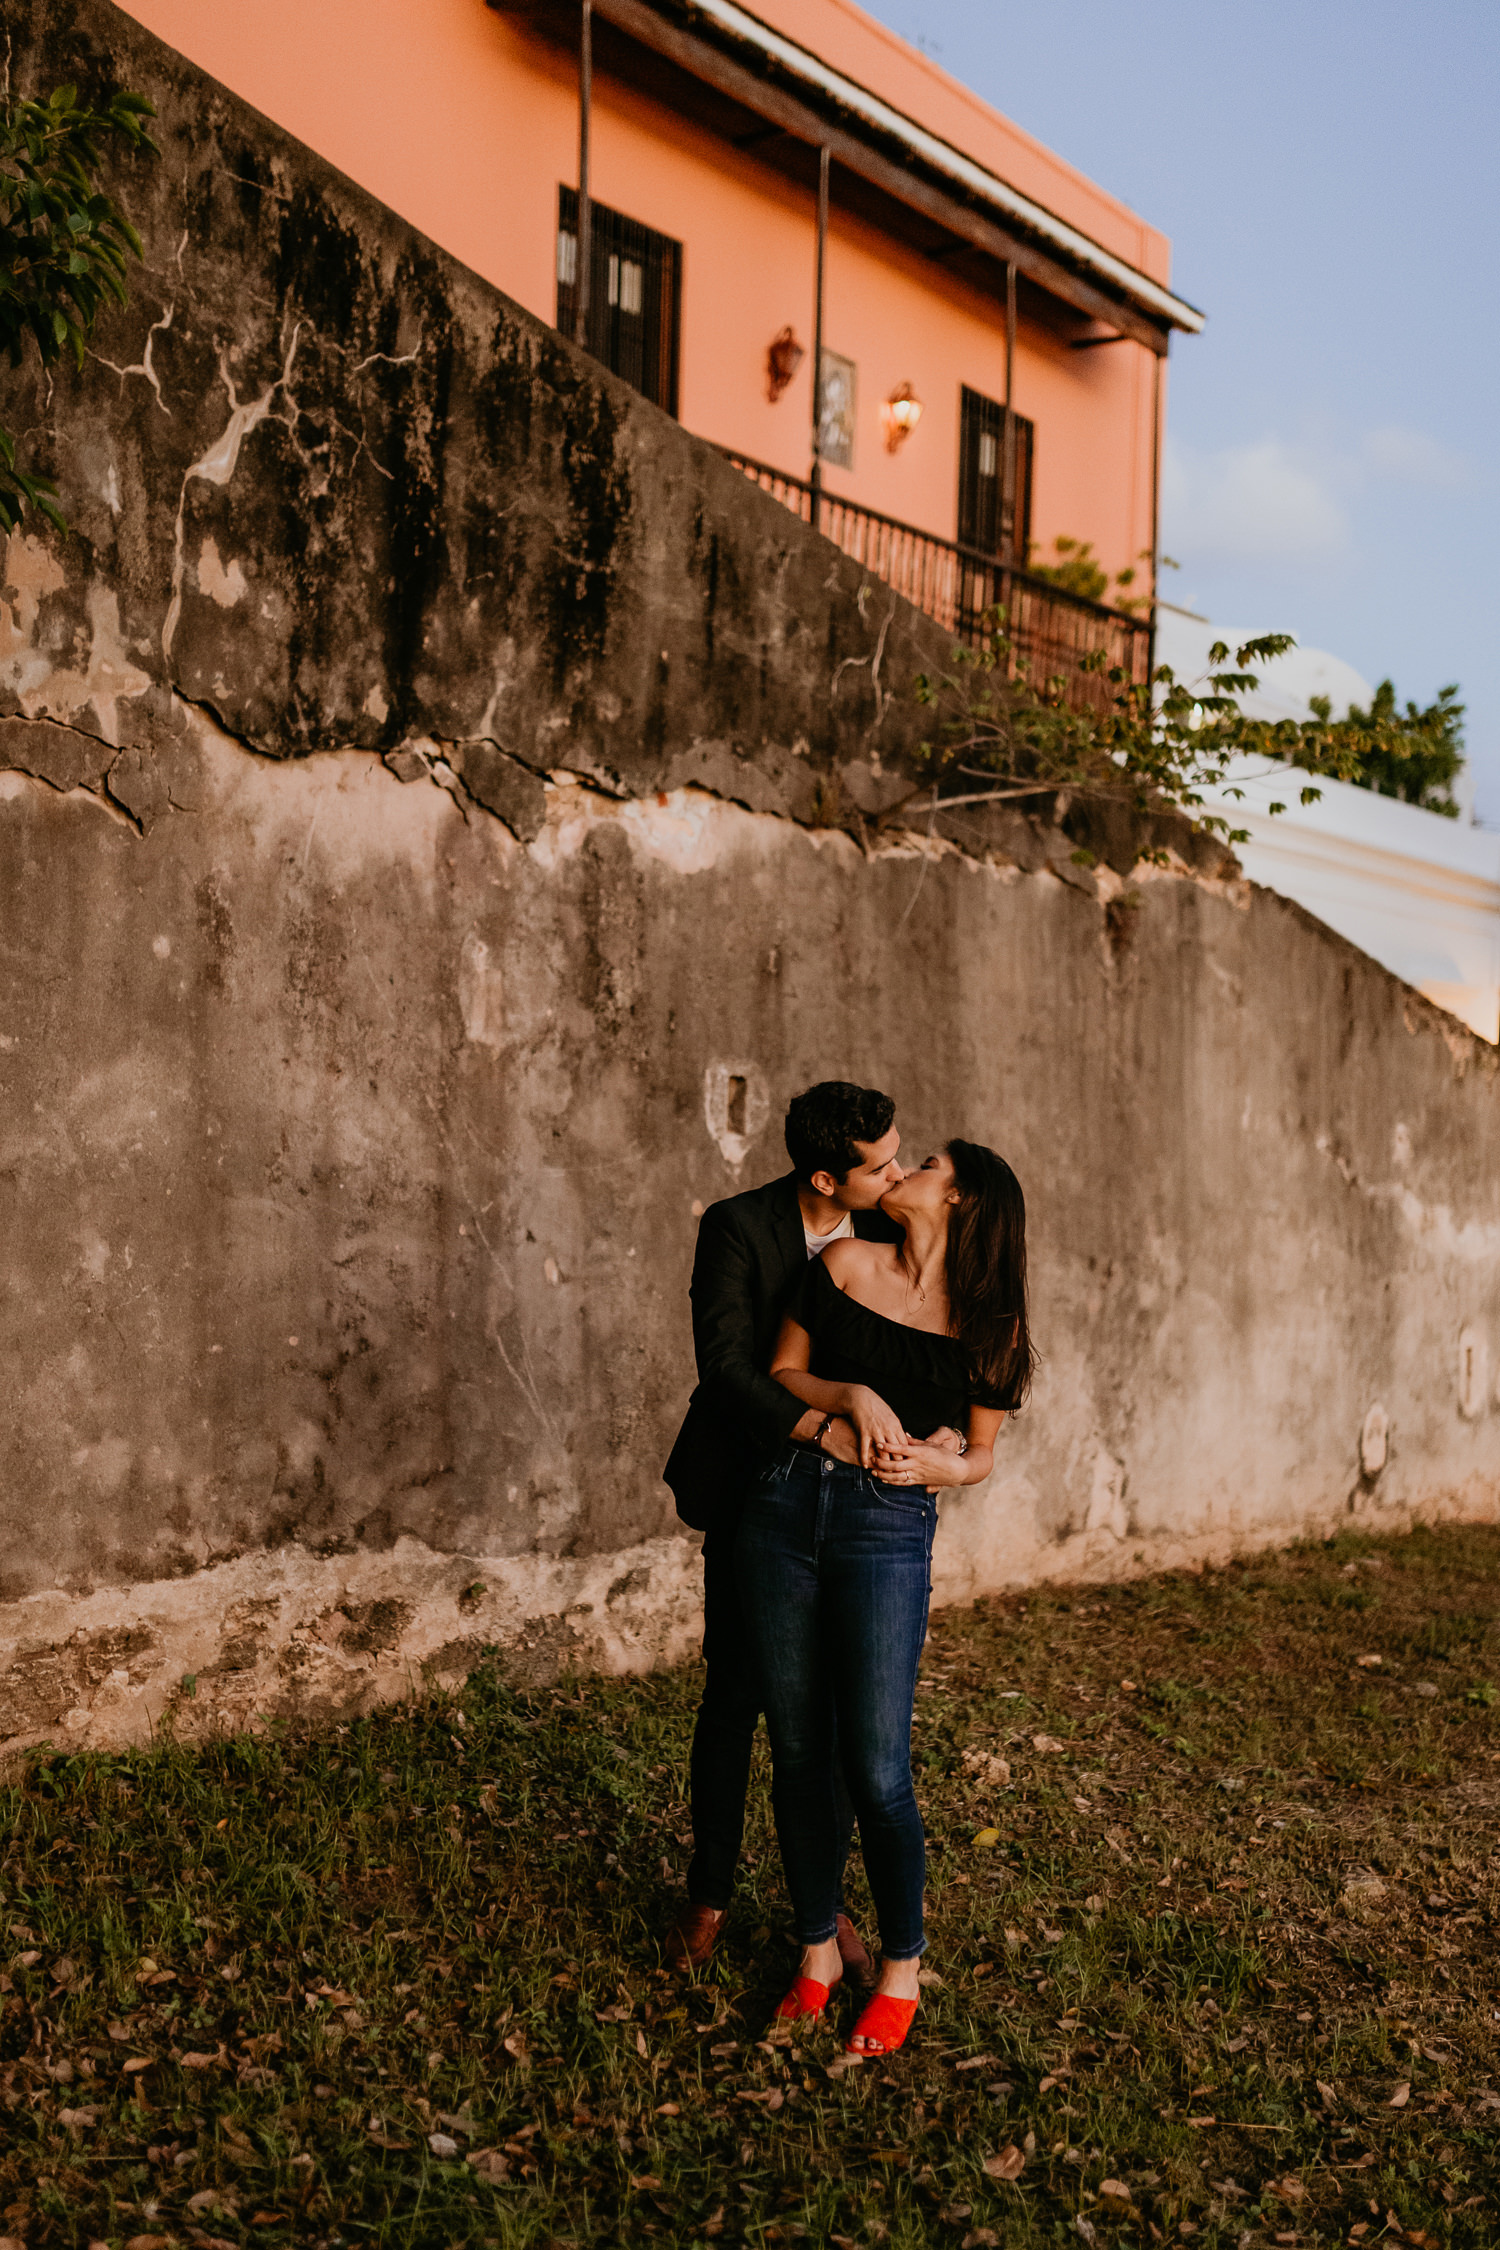 man behind woman kissing each other in front of stone wall sunset light